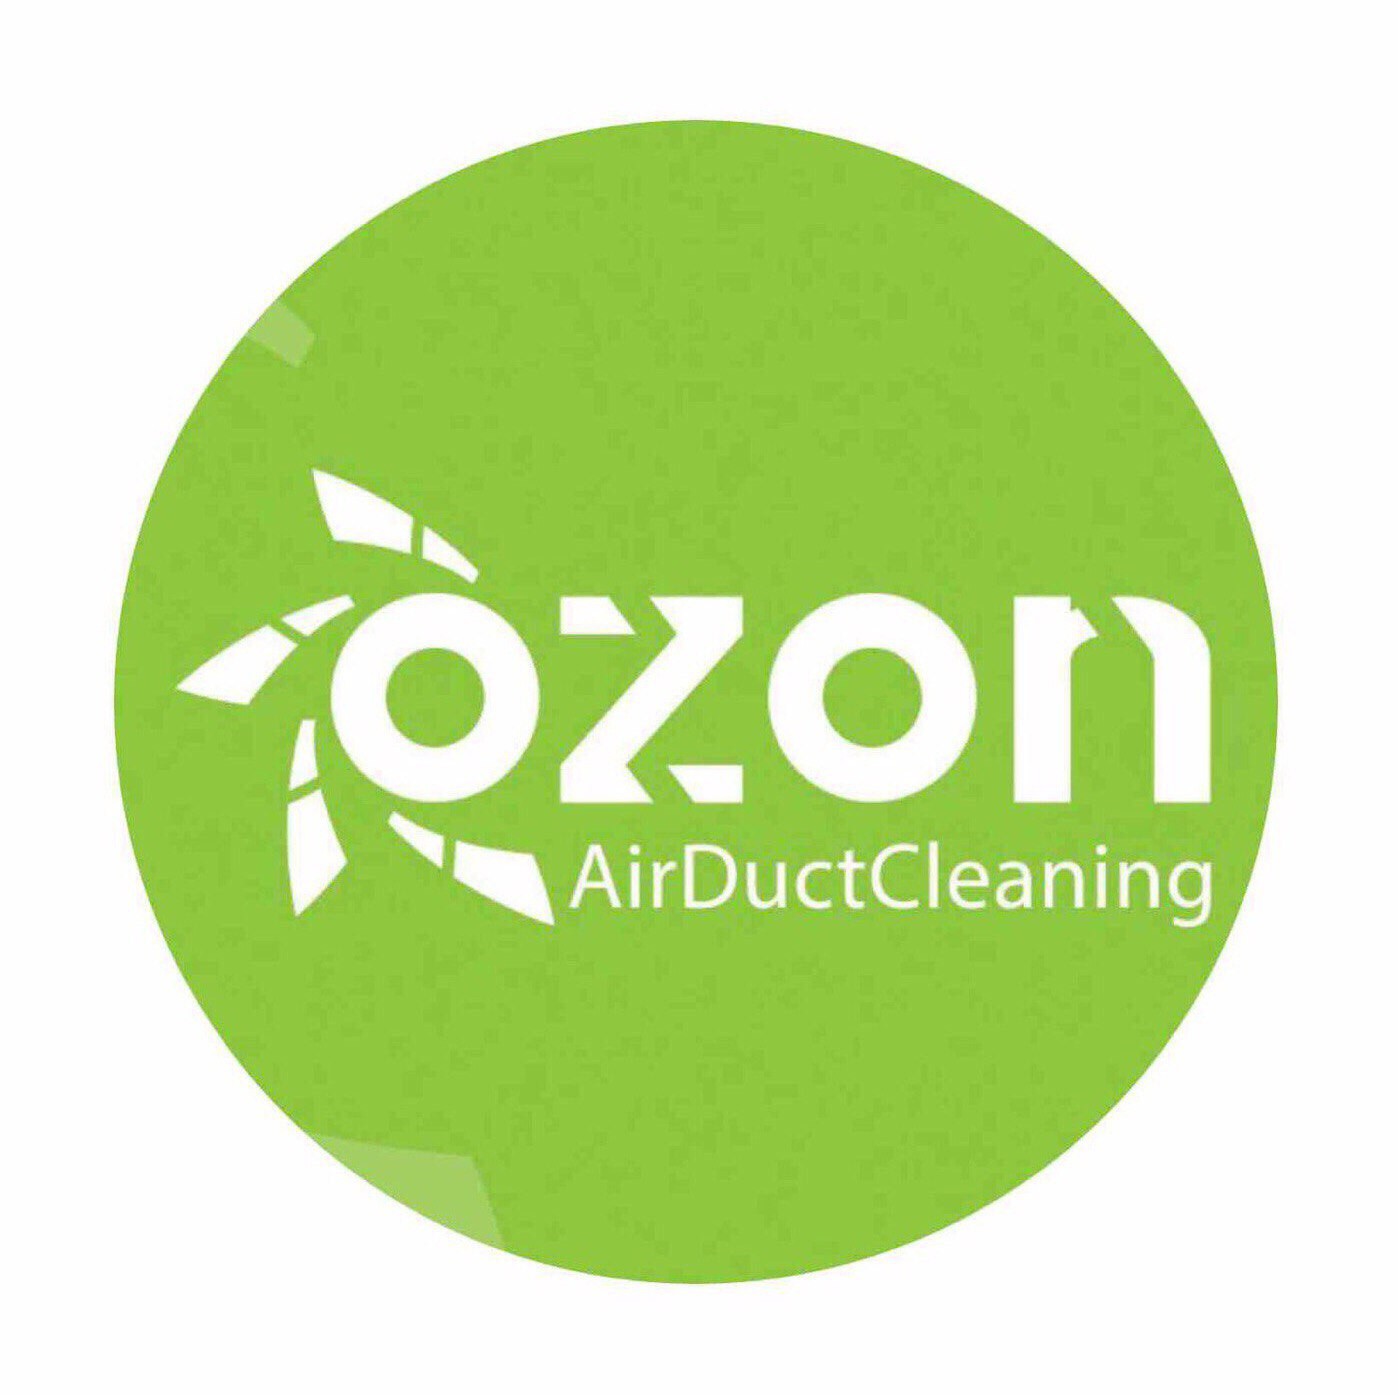 OZON Air Duct Cleaning logo